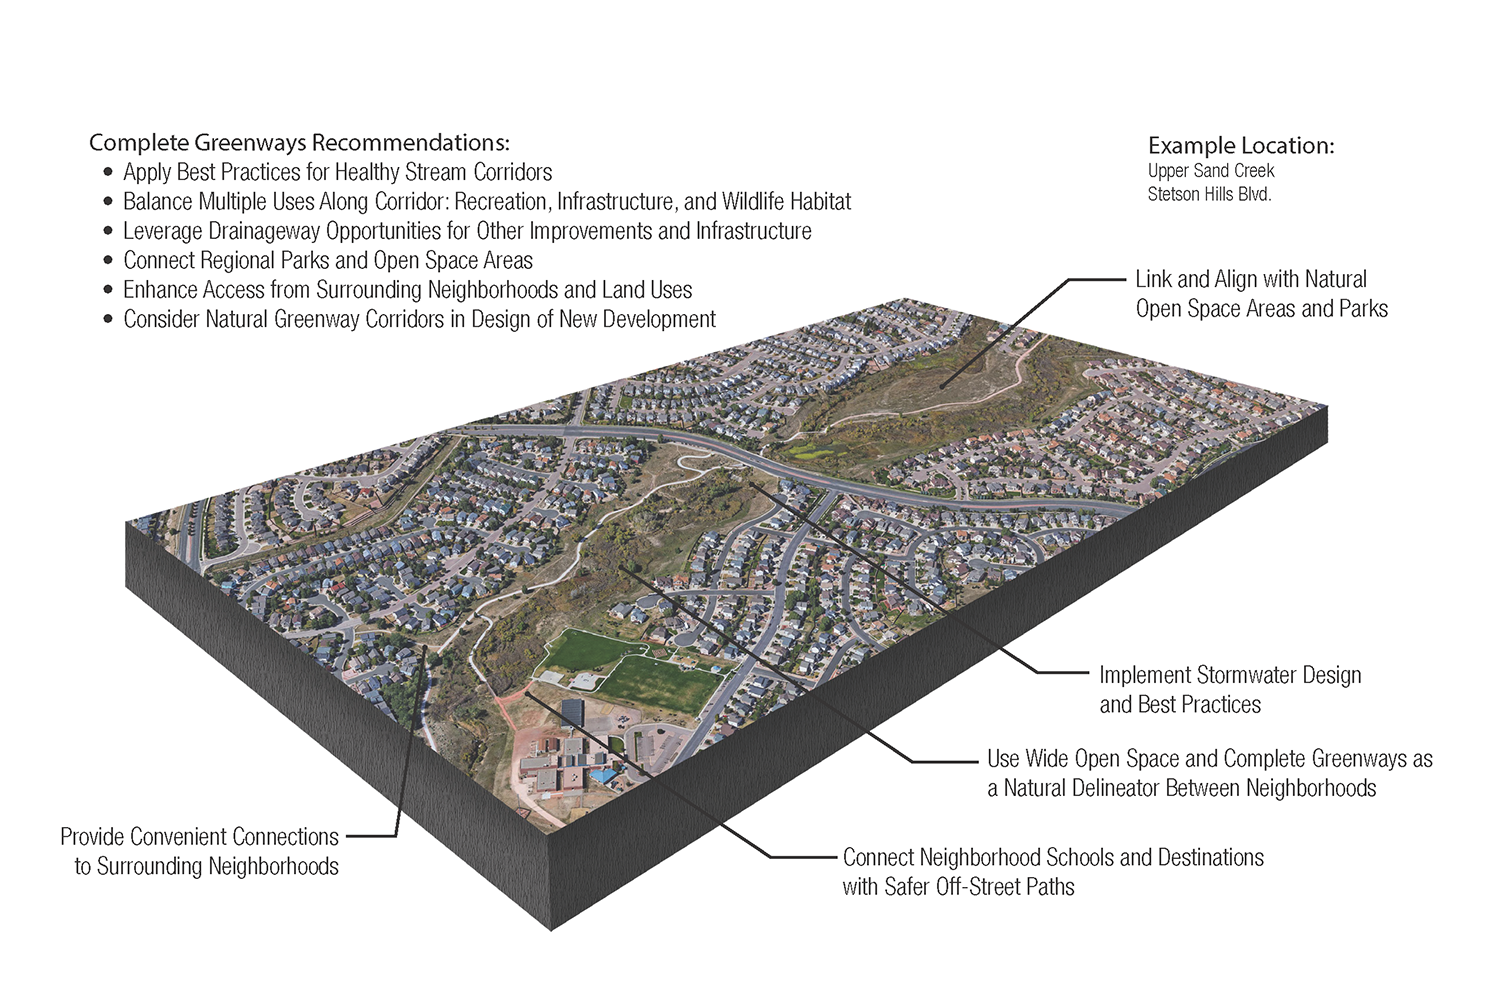 map showing complete greenways recommendations